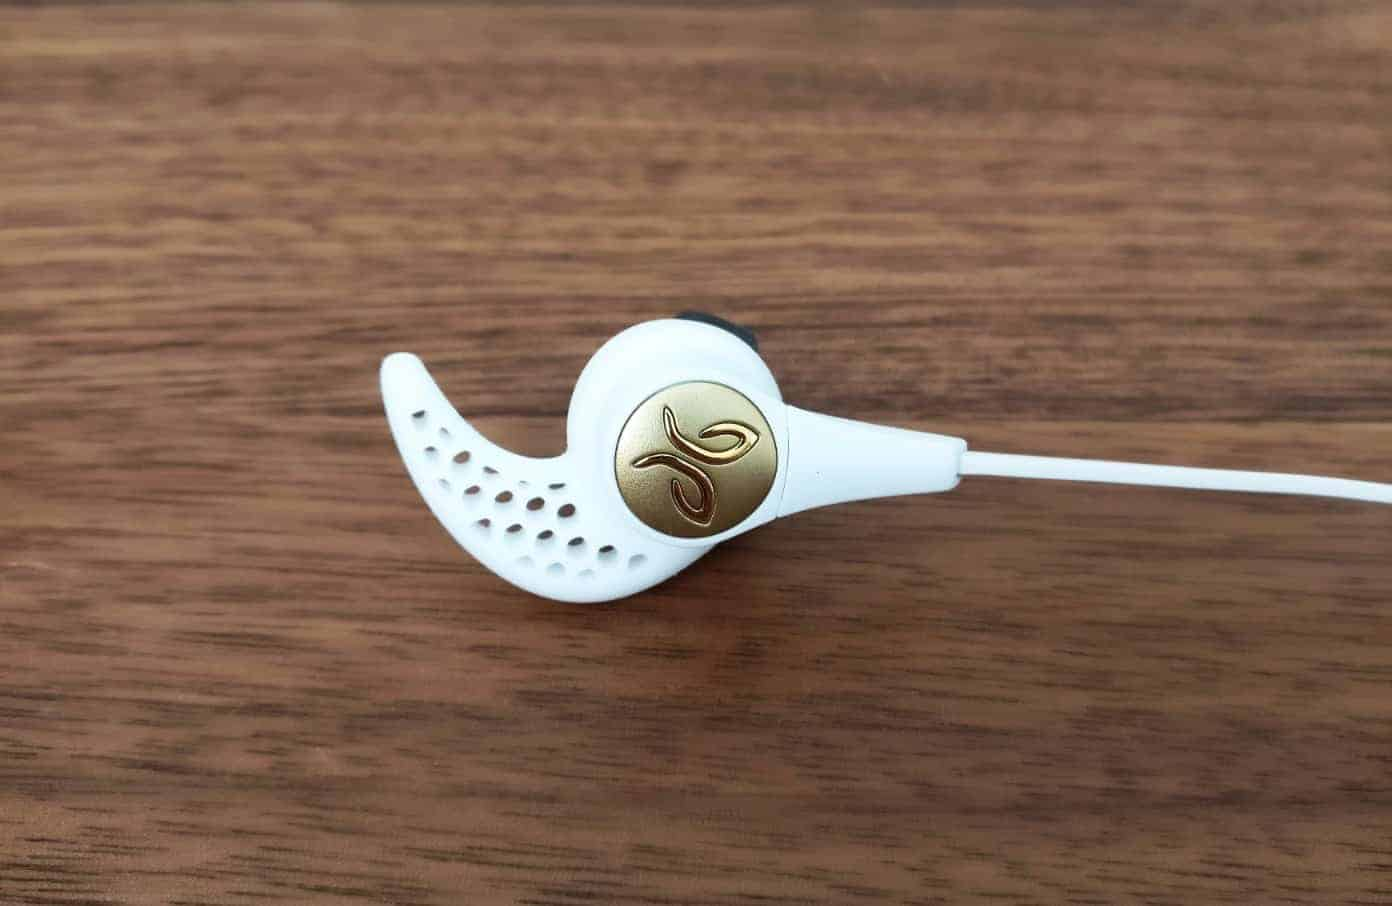 jaybird-x3-white-photos18 Jaybird X3 Bluetooth Headphones Review